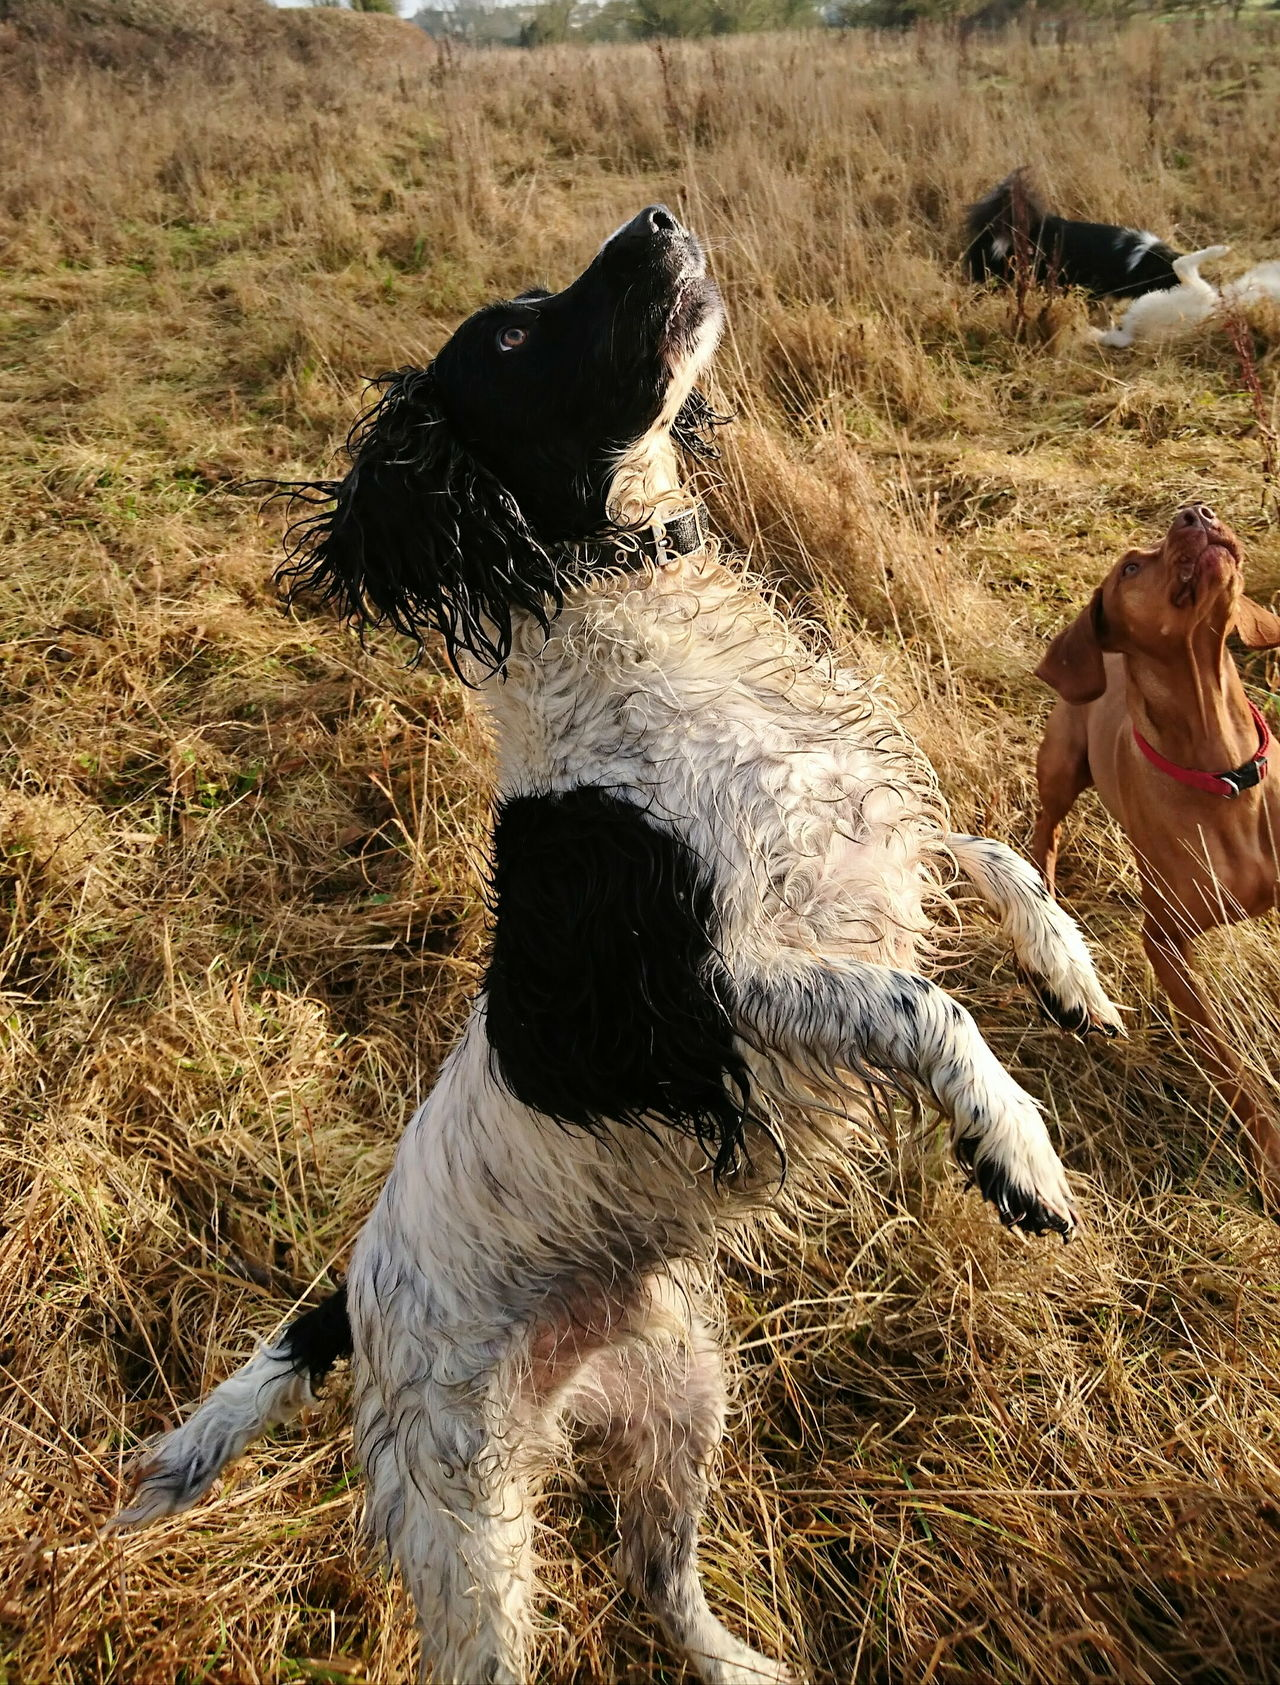 Gundog Canine Photography Dogsareawesome Dog Photography Dogs_of_instagram Dog❤ Doglovers Canine Love :) Dogs Of EyeEm Dogslife Dog Love DogLove Dog Walking Spanielsofinstagram